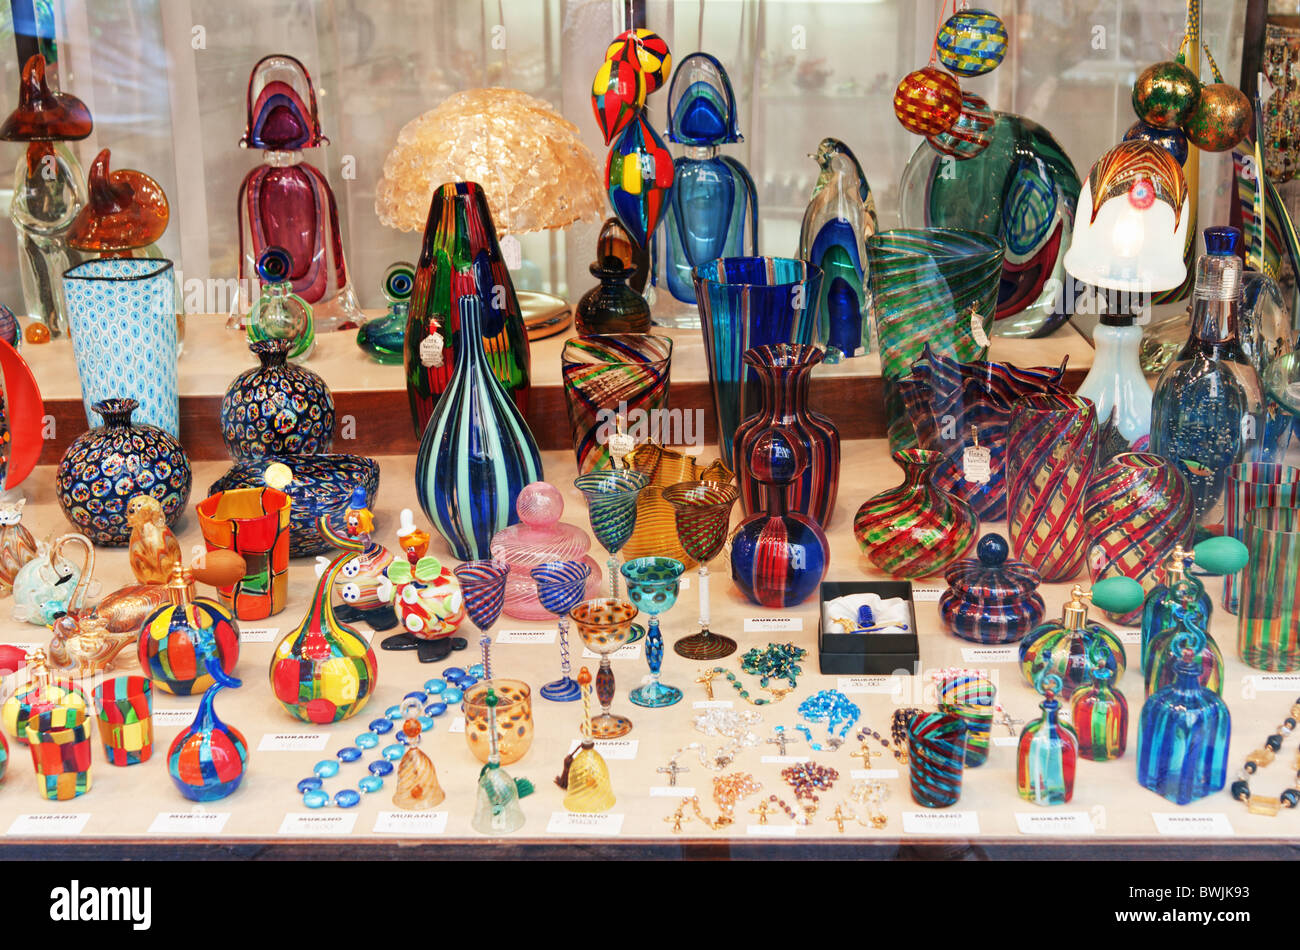 murano glass souvenir shop window venice italy stock photo 32987055 alamy. Black Bedroom Furniture Sets. Home Design Ideas